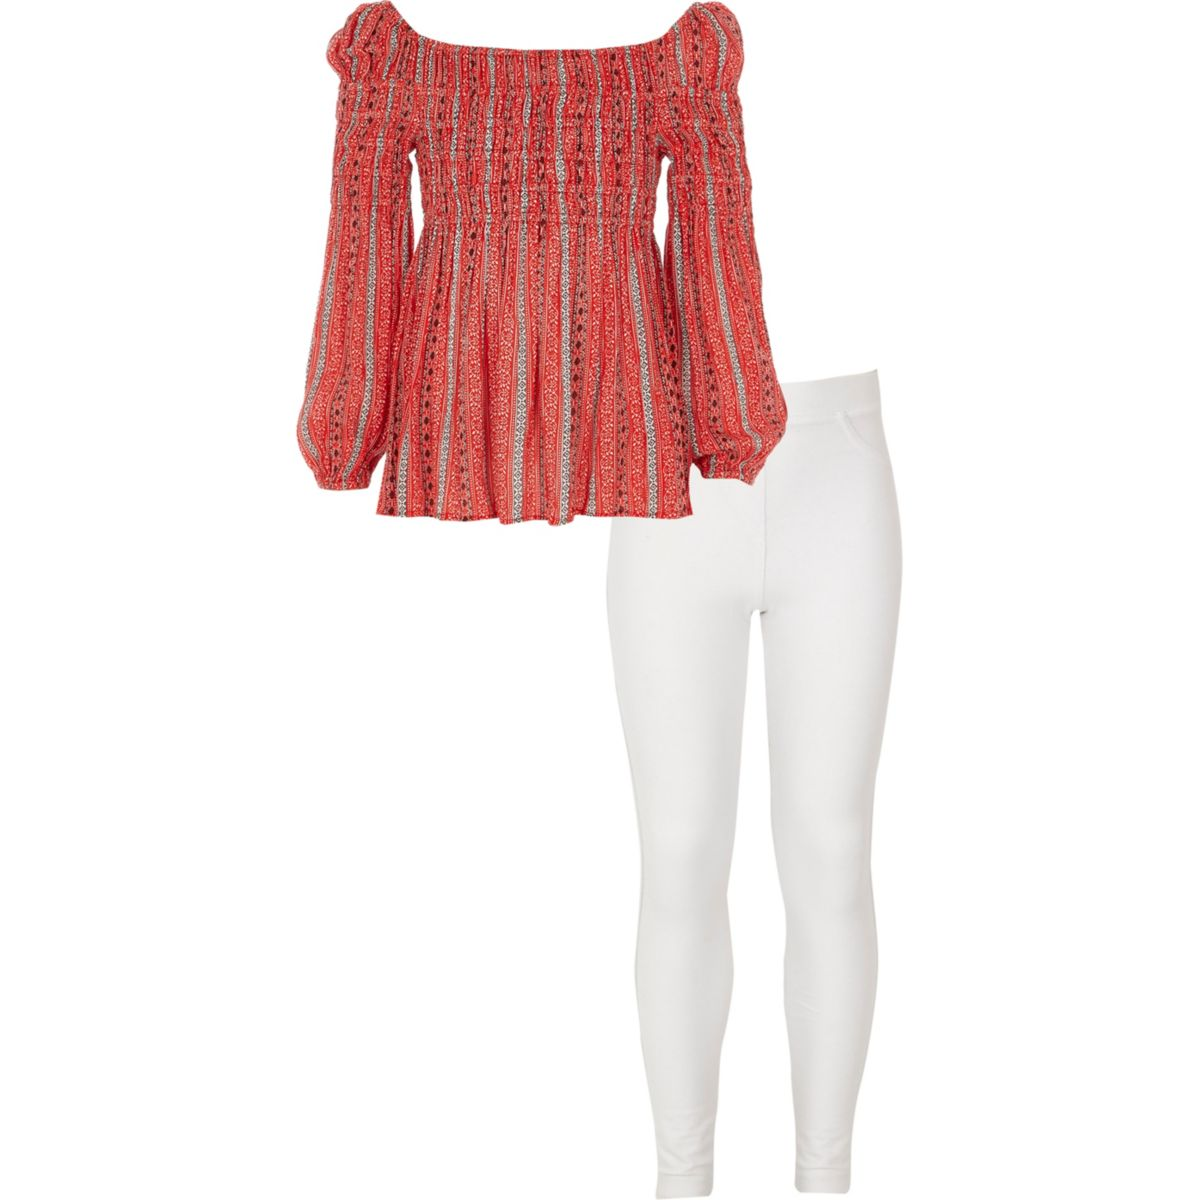 Ensemble leggings et top Bardot imprimé carrelage rouge pour fille